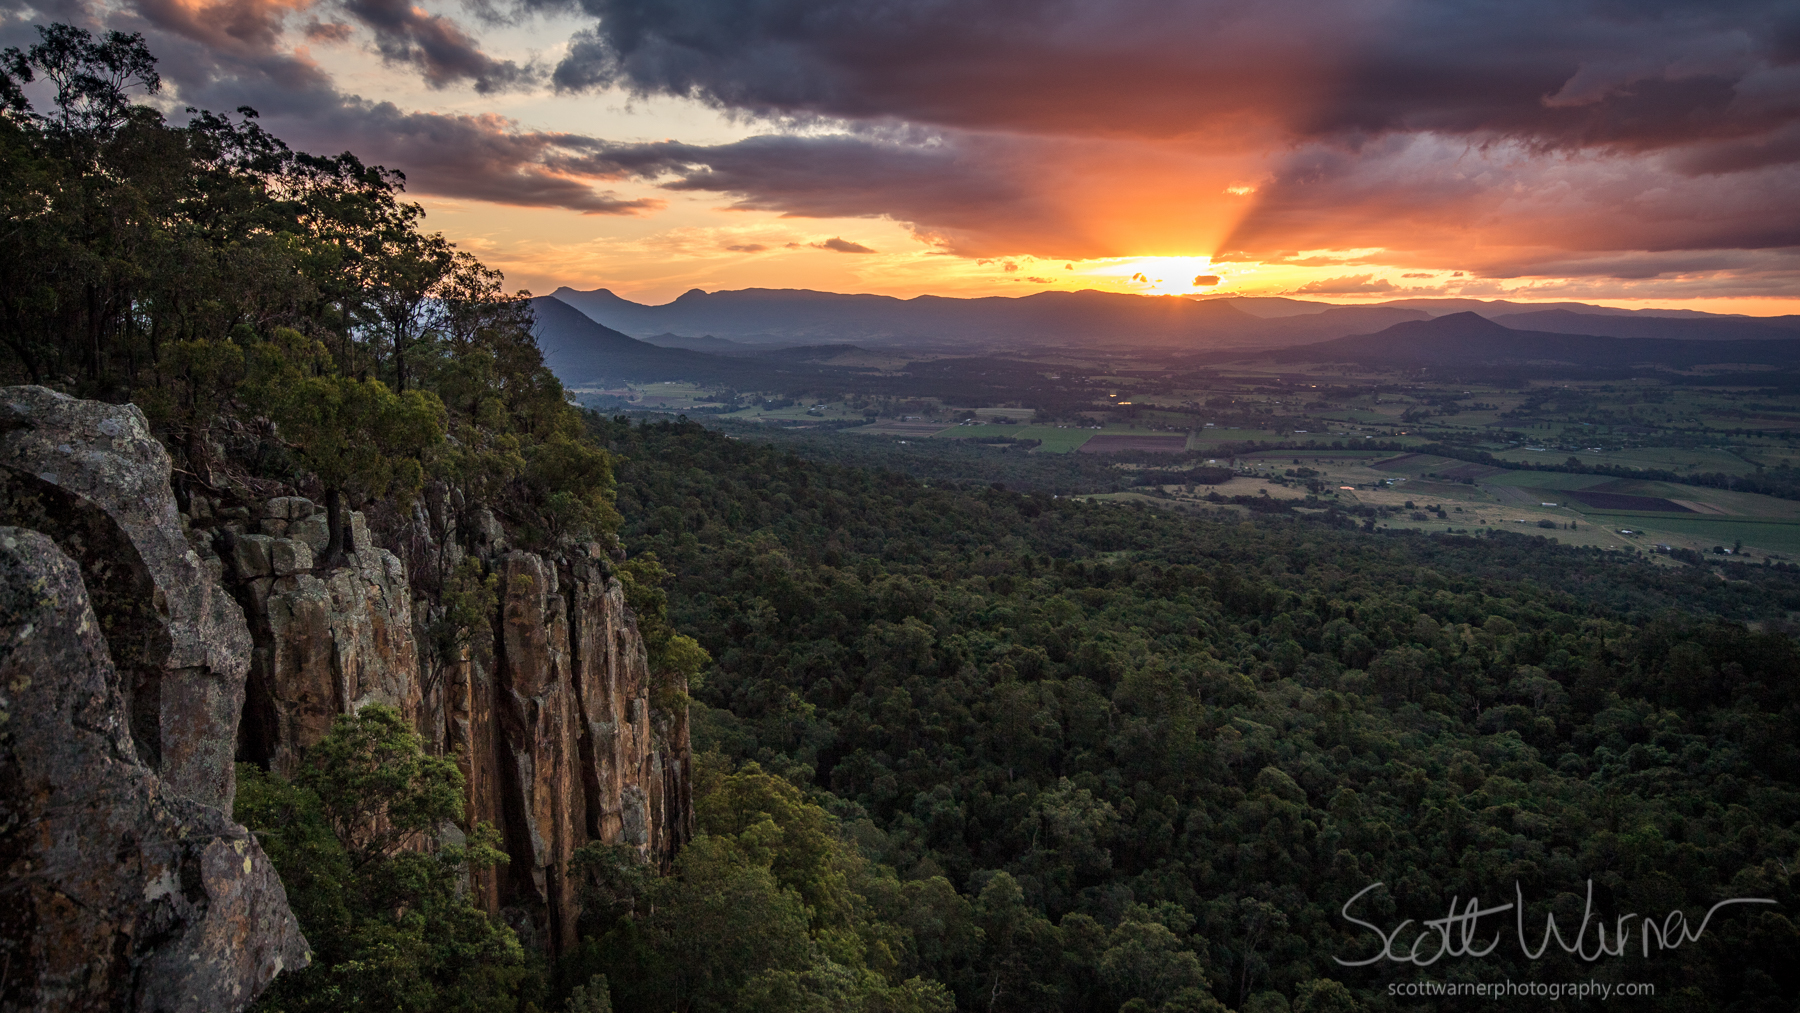 Sunset from the cliffs on Mt French near Boonah in Queensland's Scenic Rim